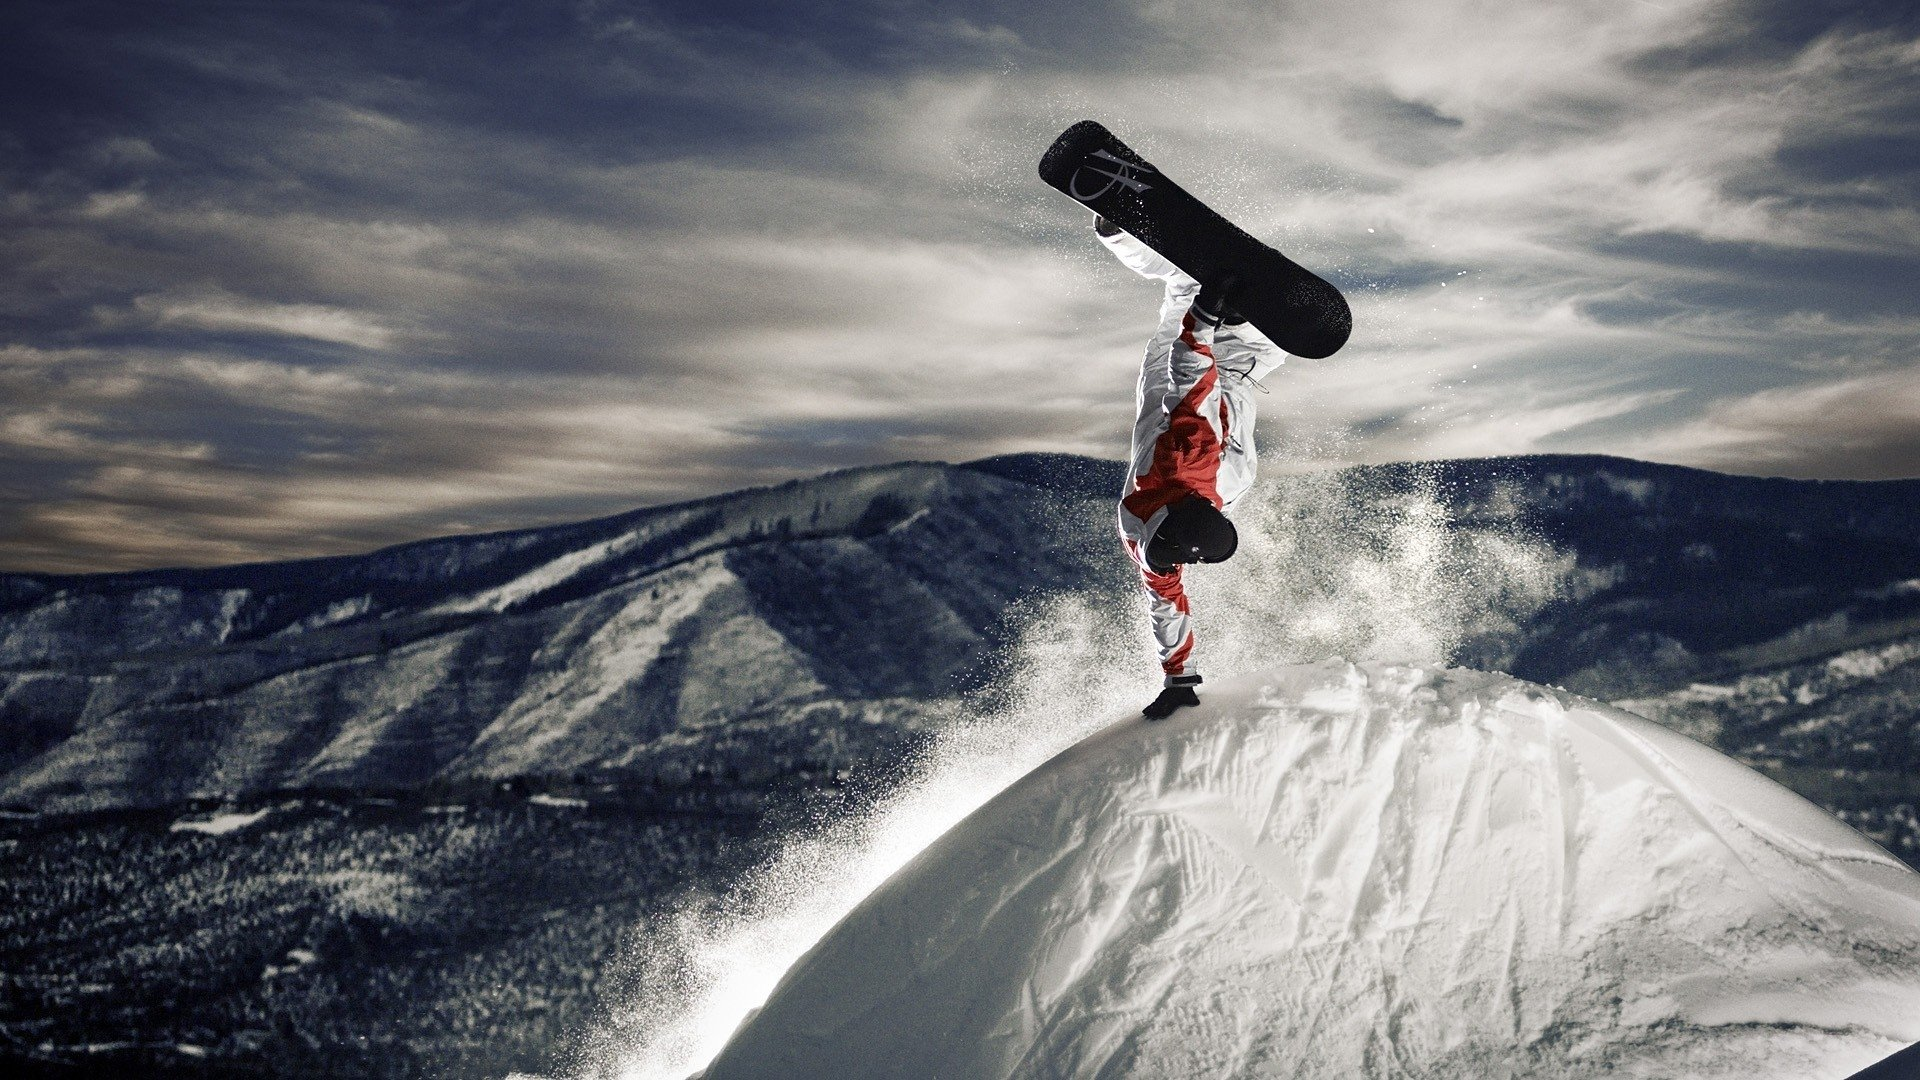 76 snowboarding hd wallpapers | background images - wallpaper abyss